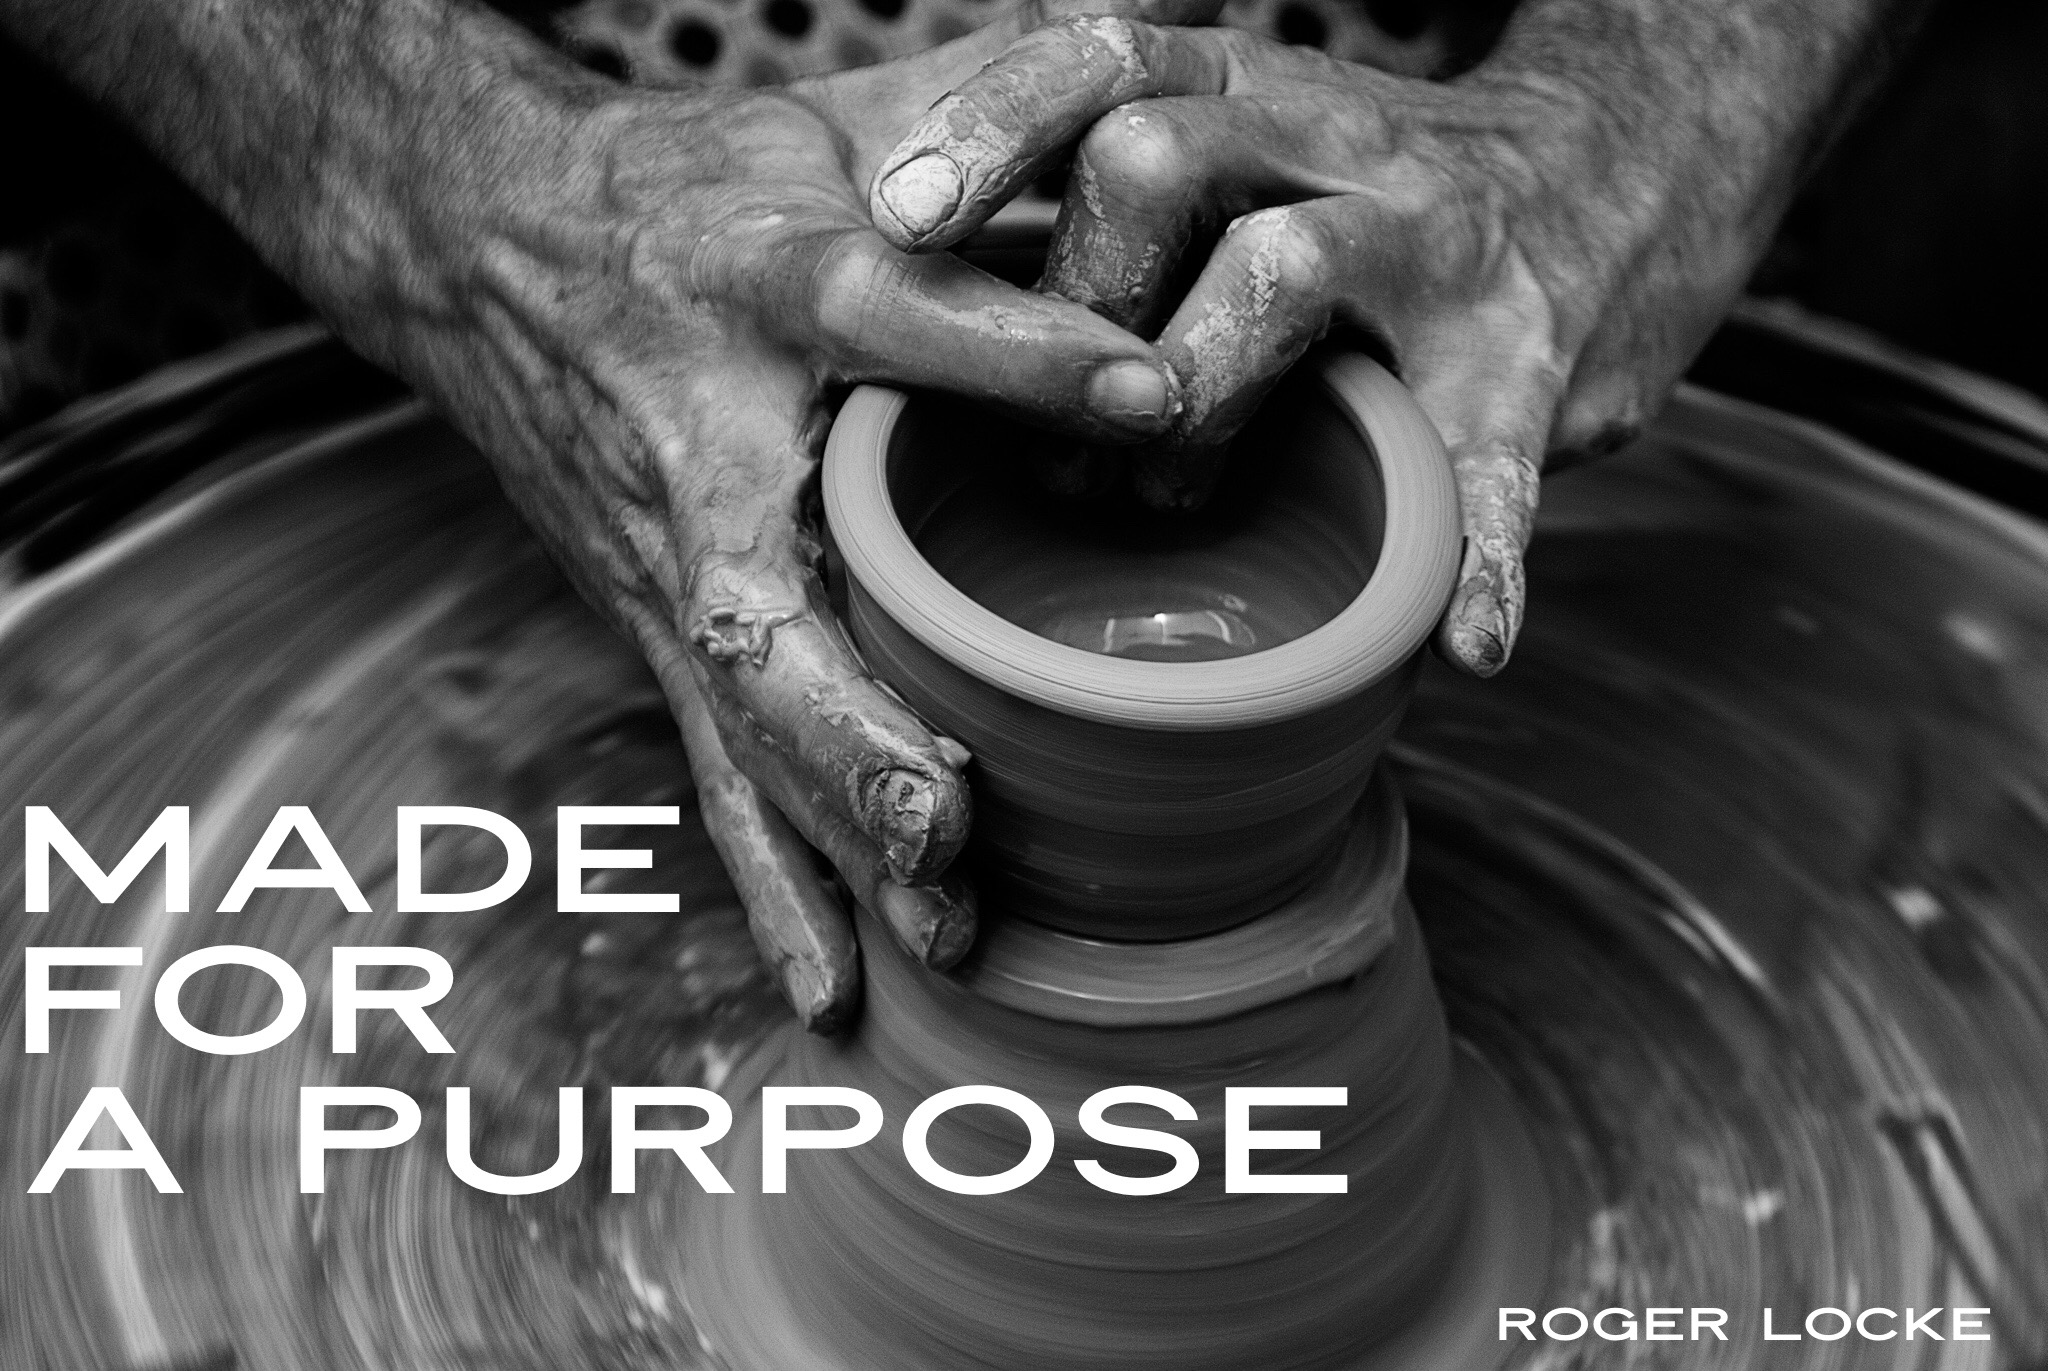 Made for a Purpose